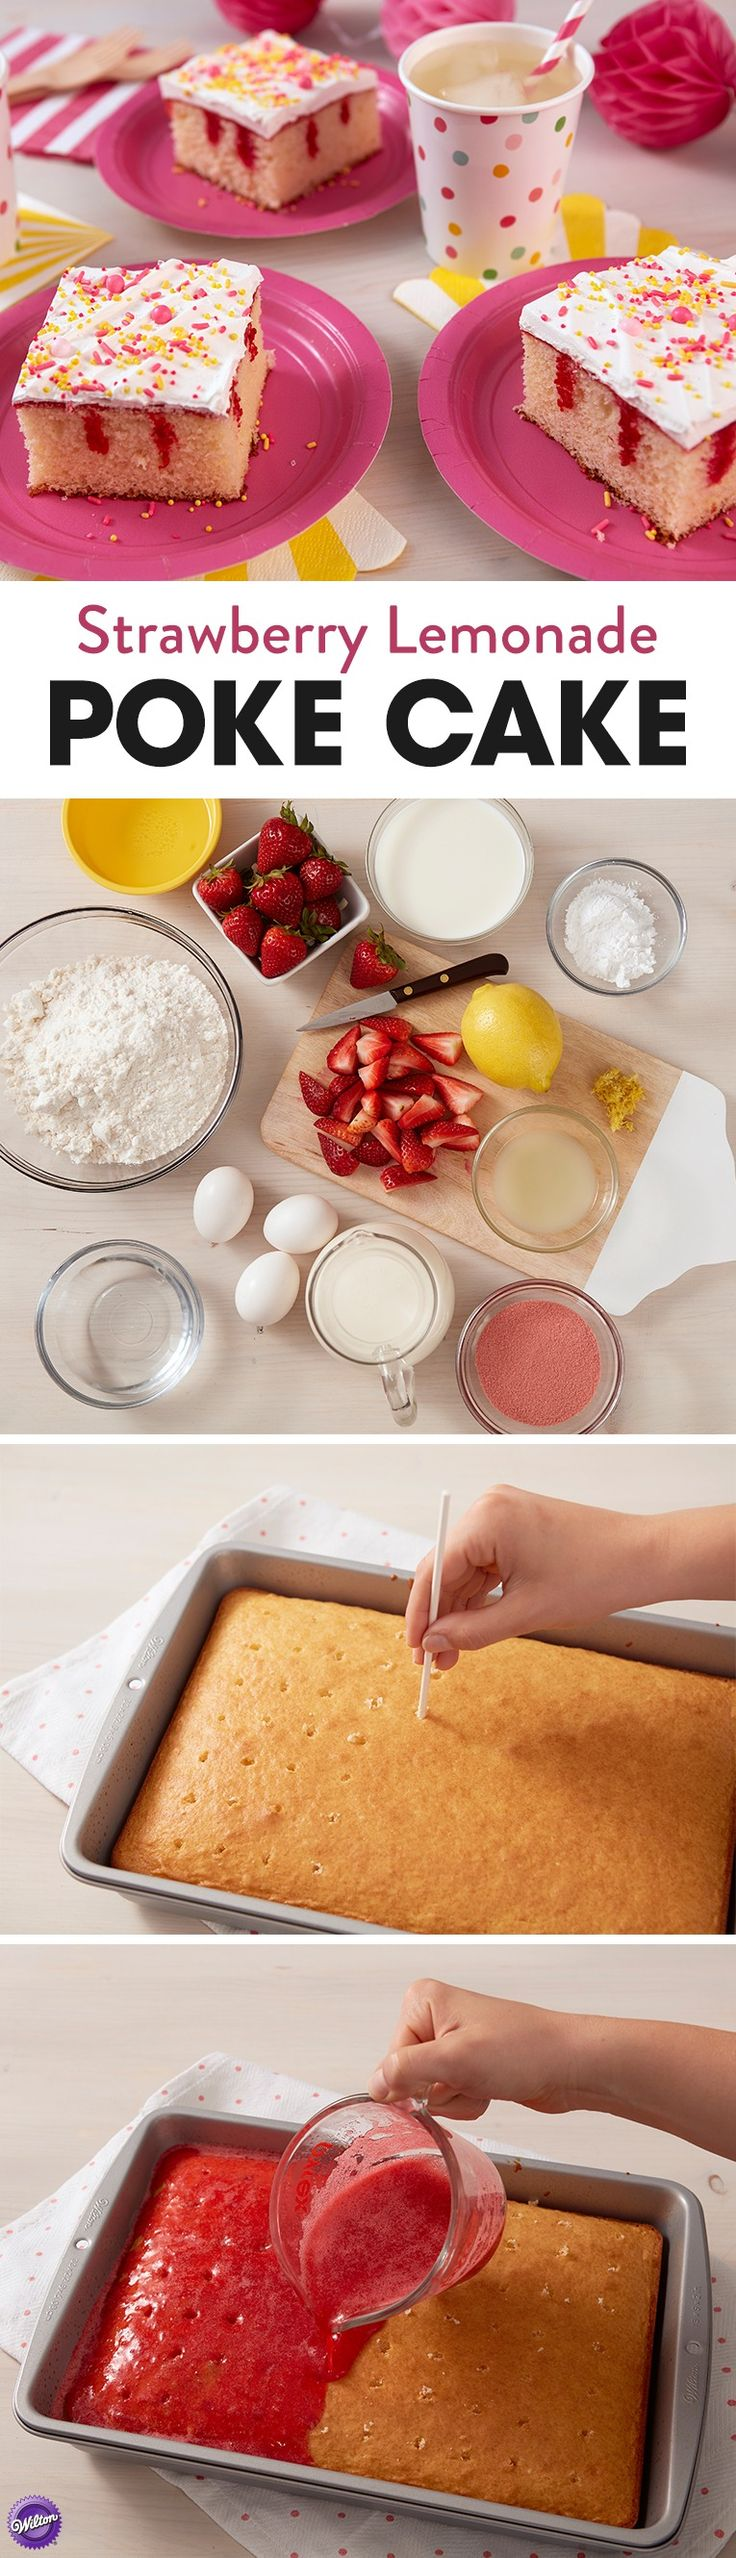 Celebrate summer with this delicious Strawberry Lemonade Poke Cake. Made by poking holes in the cake and then covering the cake with a sweet gelatin mixture, this cake is light and refreshing, and looks beautiful when cut open! An easy treat to make for the 4th of July or a summer birthday celebration, this cake is bursting with sweet strawberry and lemon flavor.